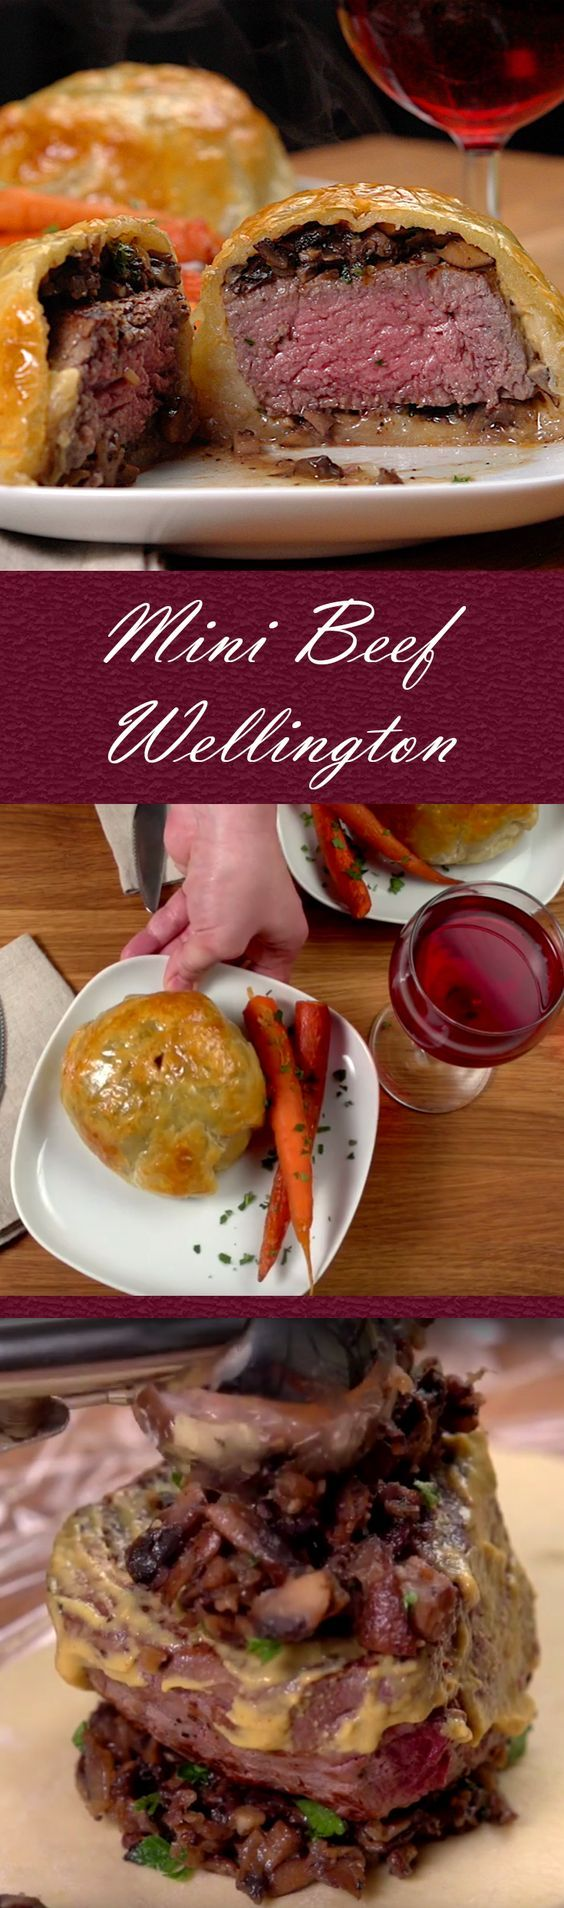 Mini Beef Wellington Recipe: Impress guests or the family with this sophisticated dish.